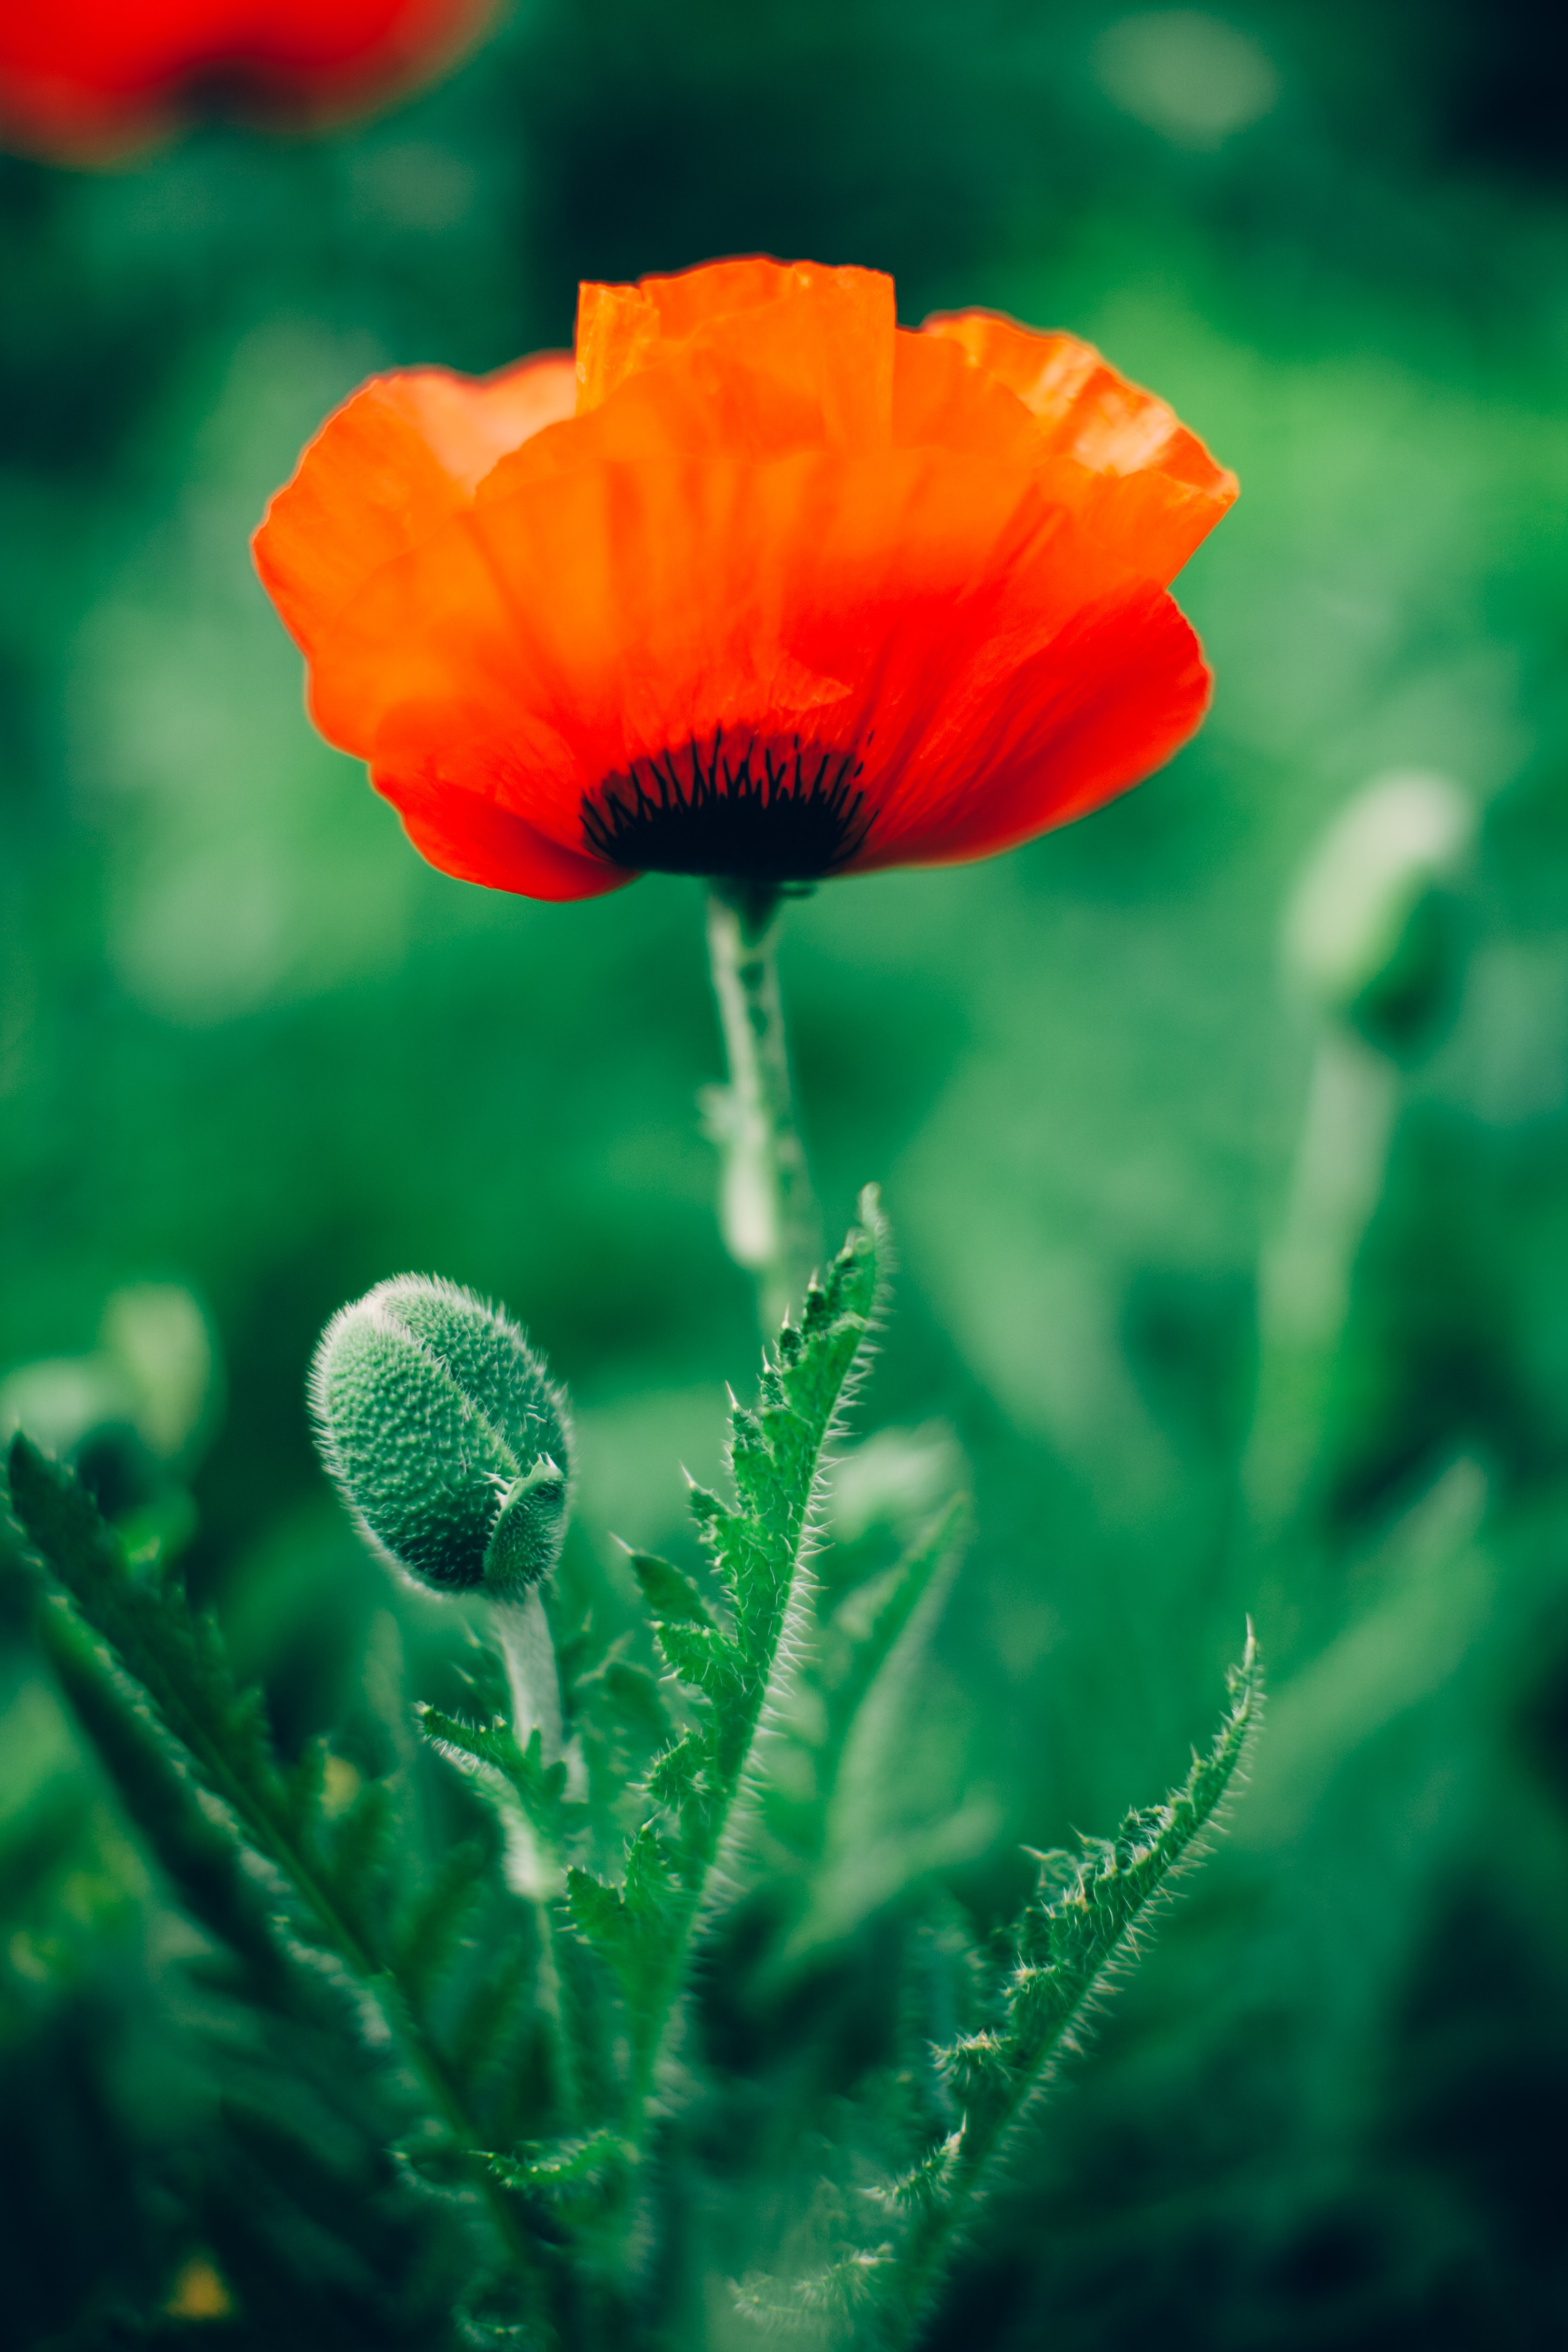 Close-up of a blooming red poppy and poppy seed heads